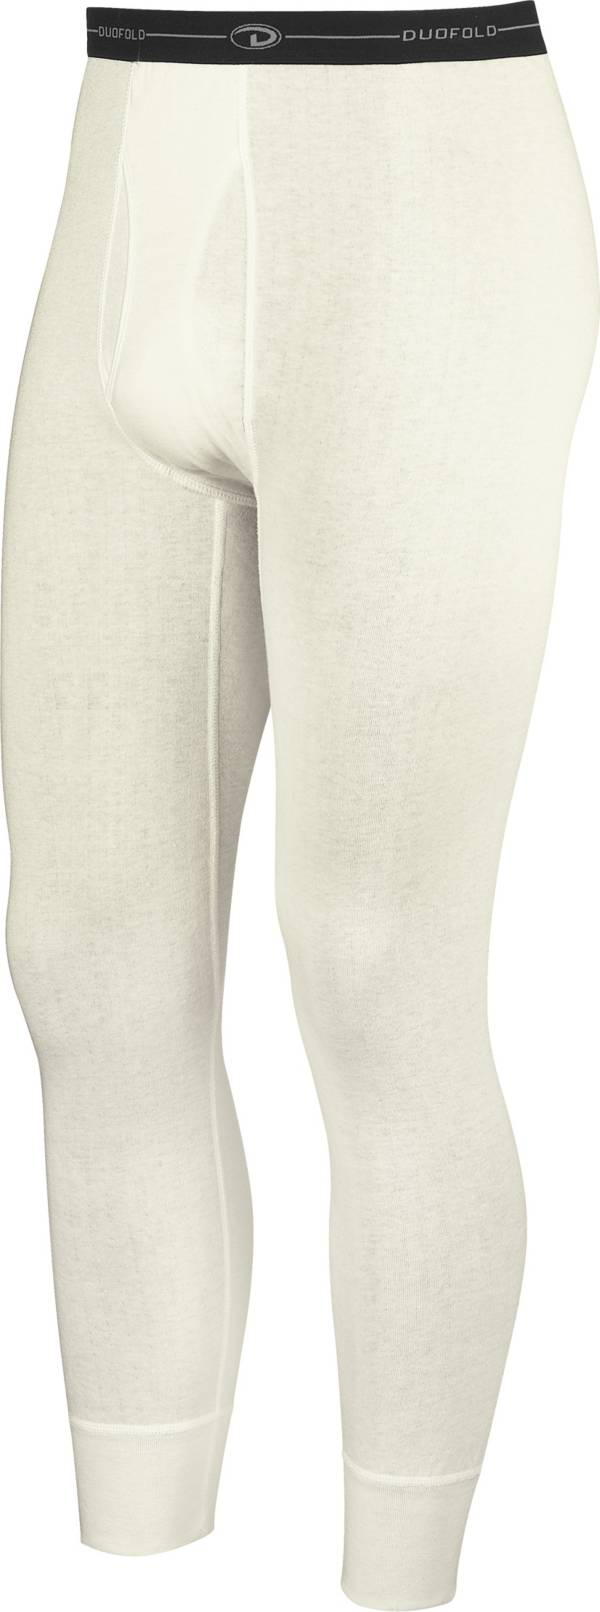 Duofold Men's Insulayer Pants product image